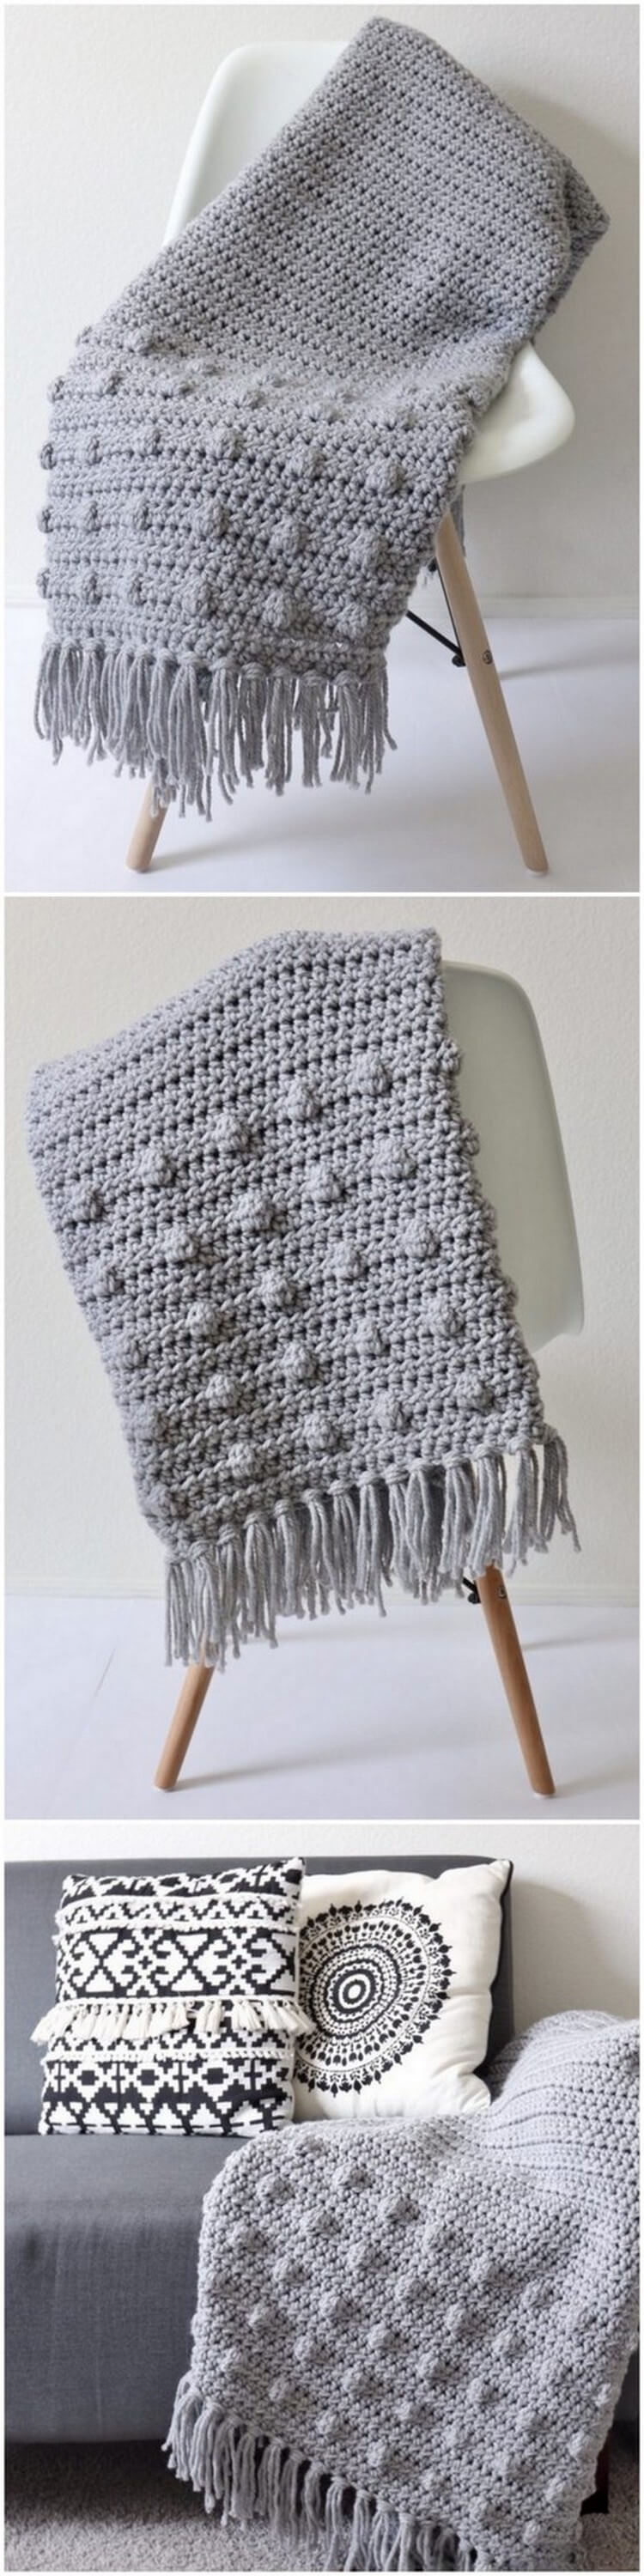 Crochet Blanket Pattern (9)